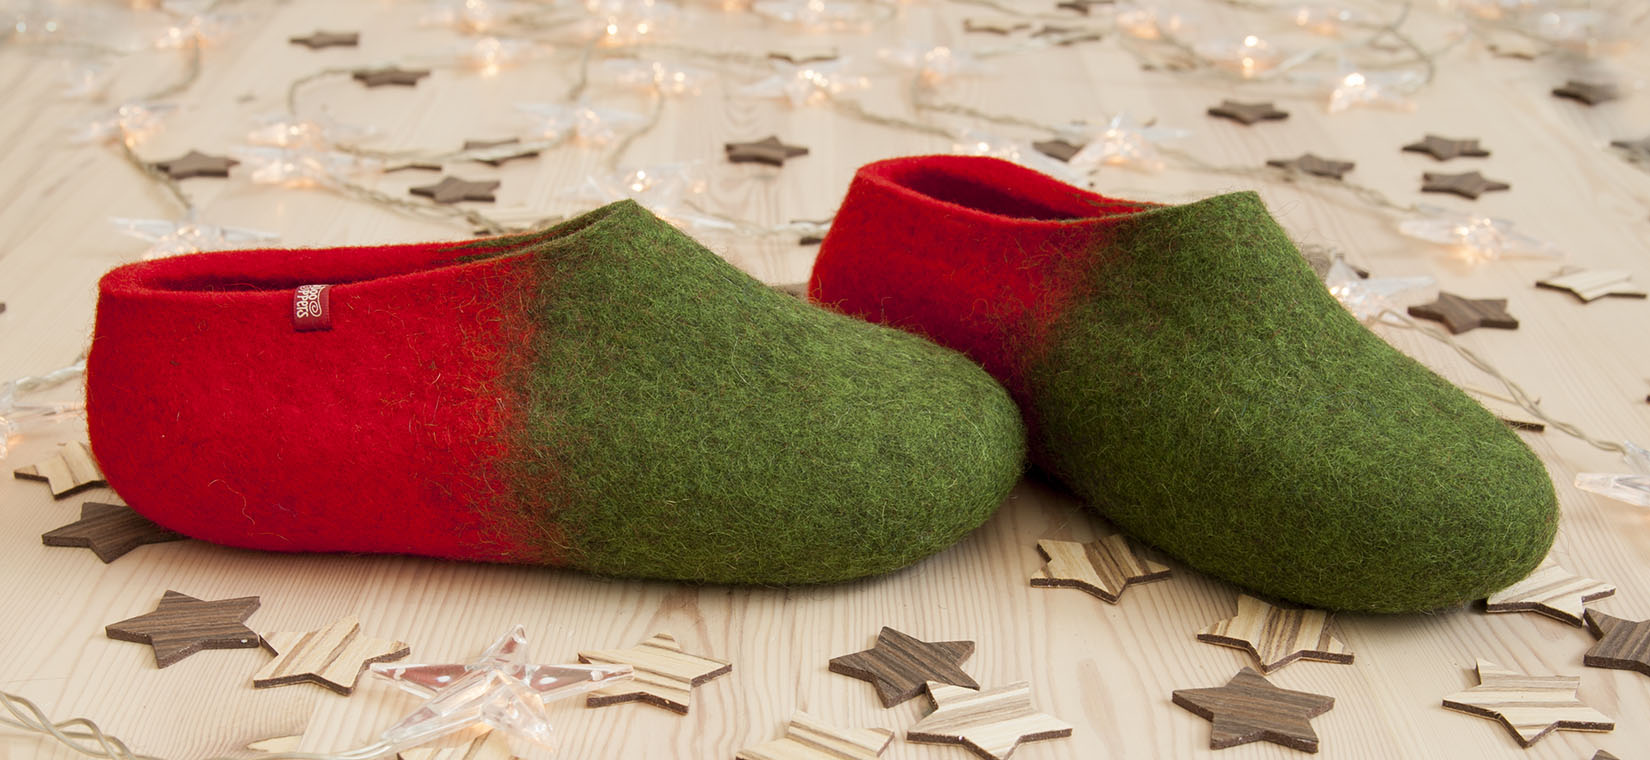 wooppers slippers JAZZ green red